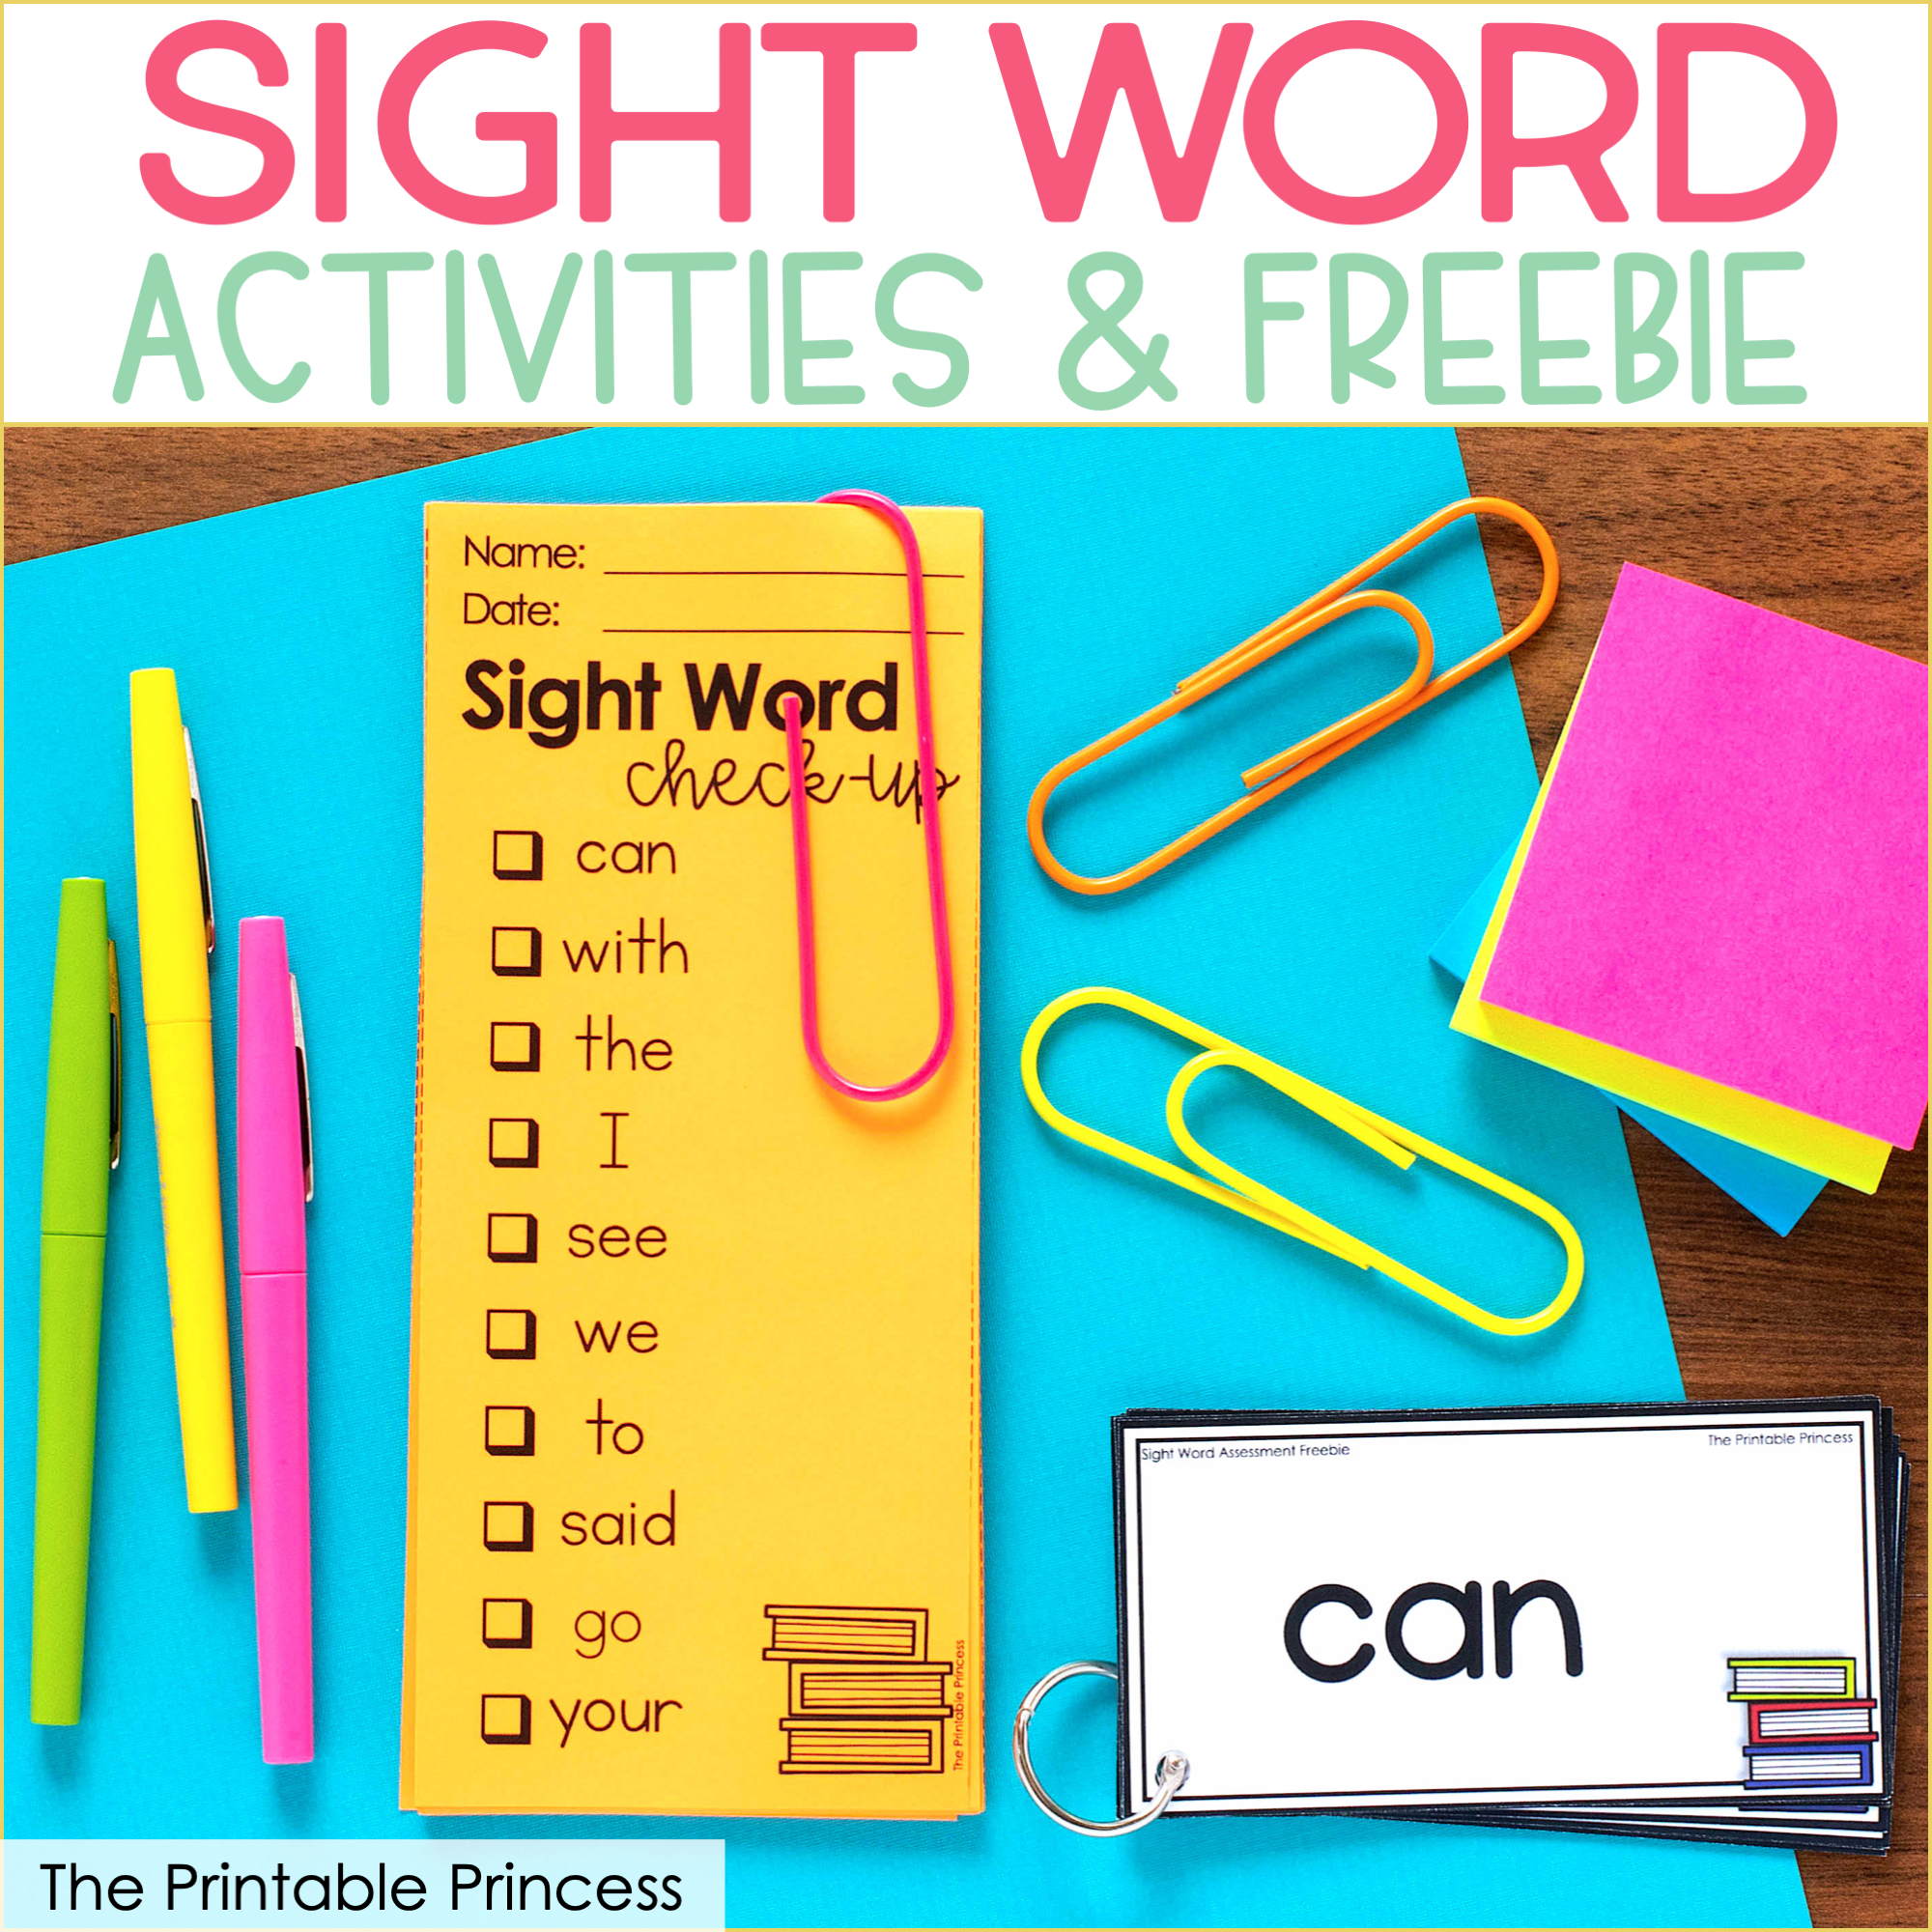 image regarding Printable Sight Word Activities called Pleasurable Sight Phrase Pursuits for Kindergarten The Printable